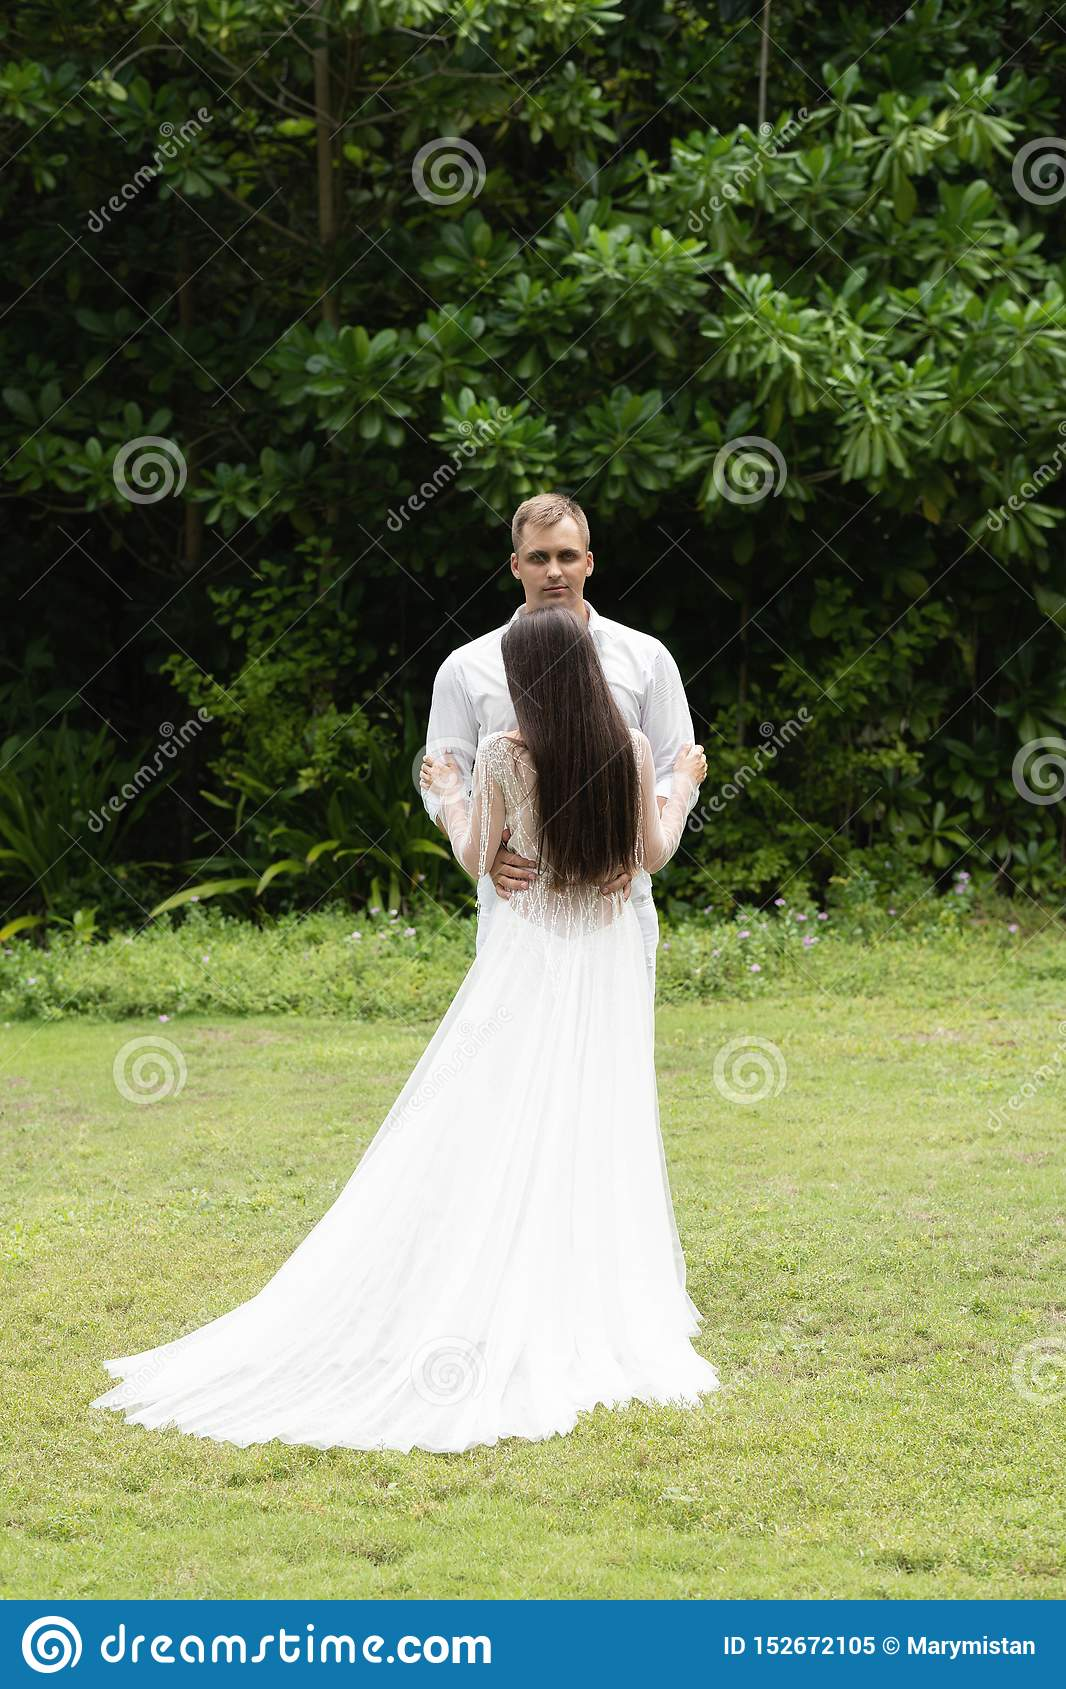 Newlyweds stand on a green lawn against the backdrop of a tropical forest